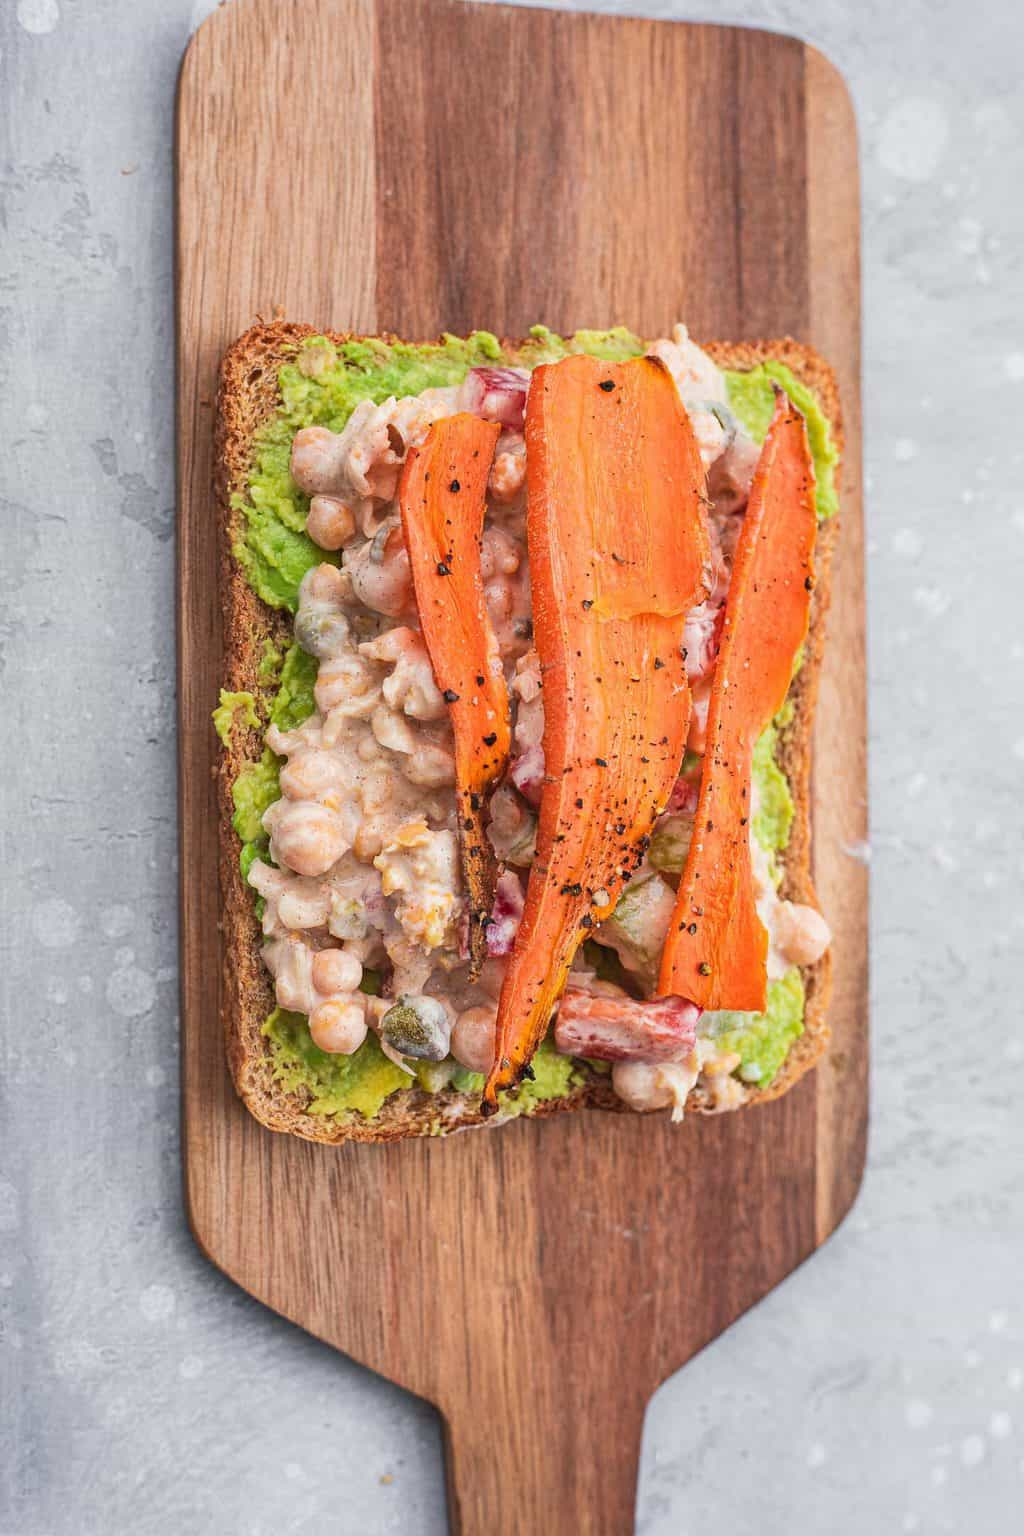 Open-faced chickpea salad sandwich